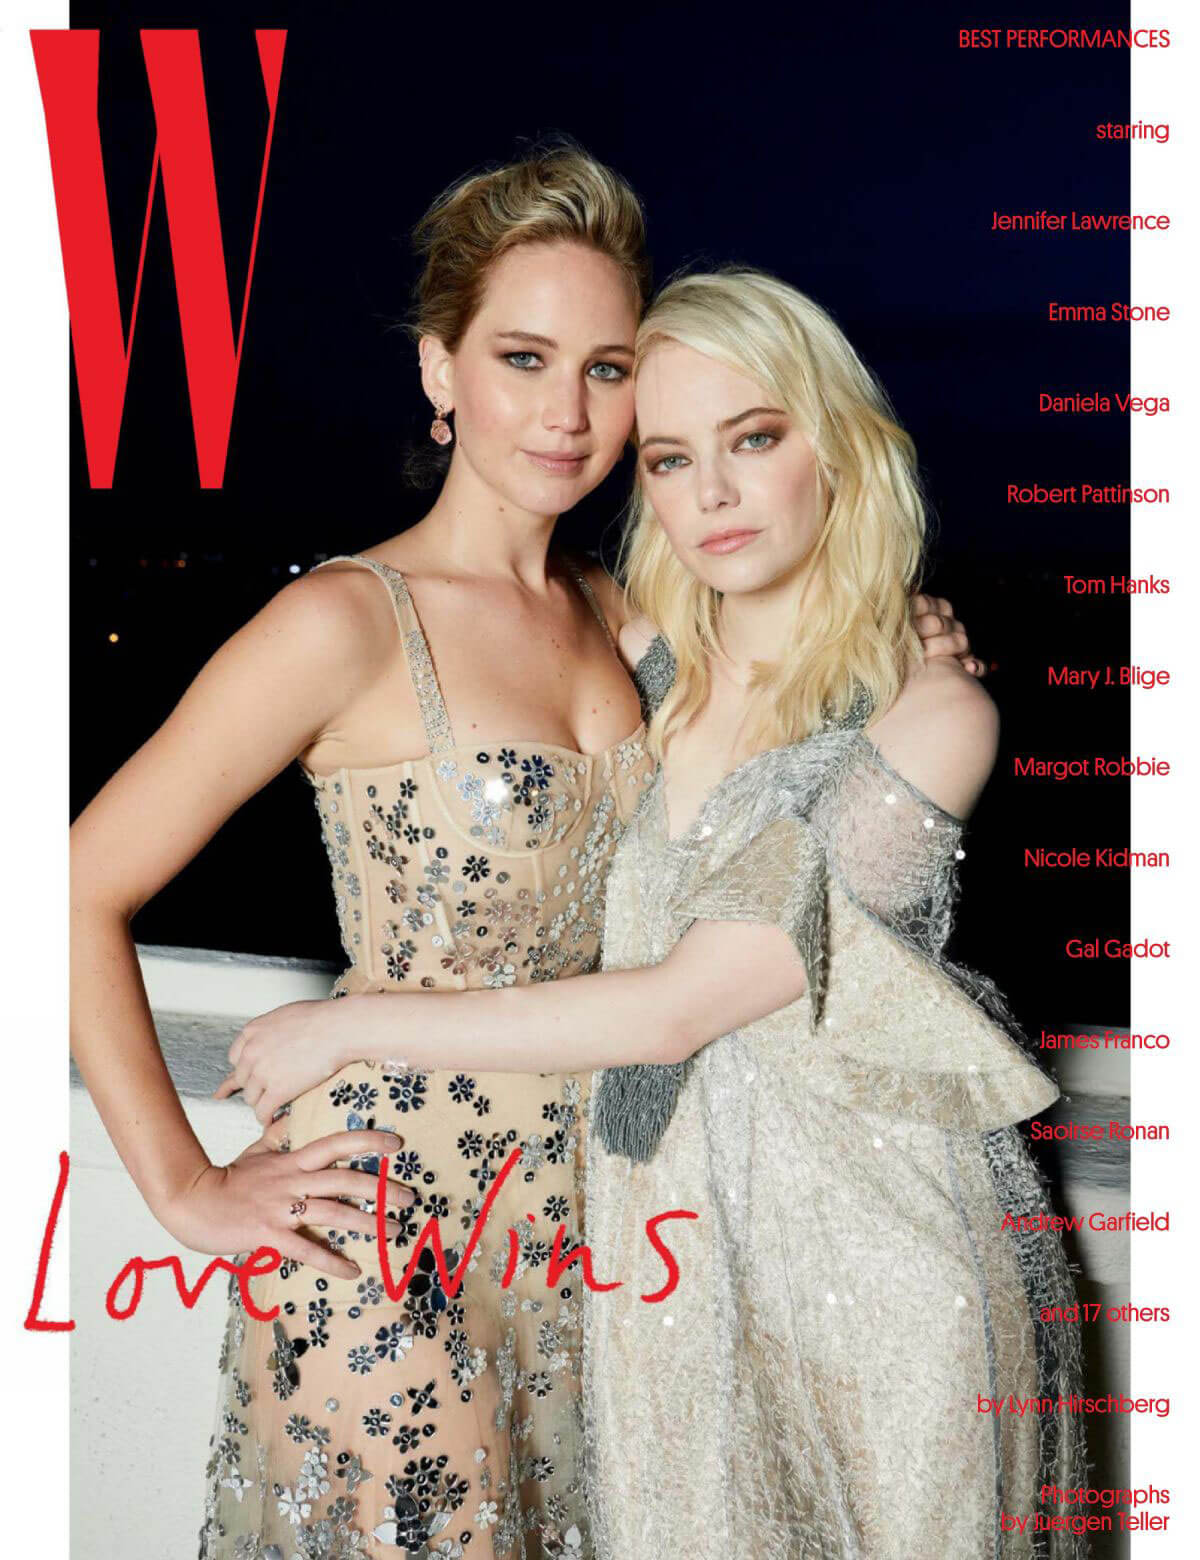 Jennifer Lawrence and Emma Stone Stills for W Magazine, January 2018, Best Performances Issue